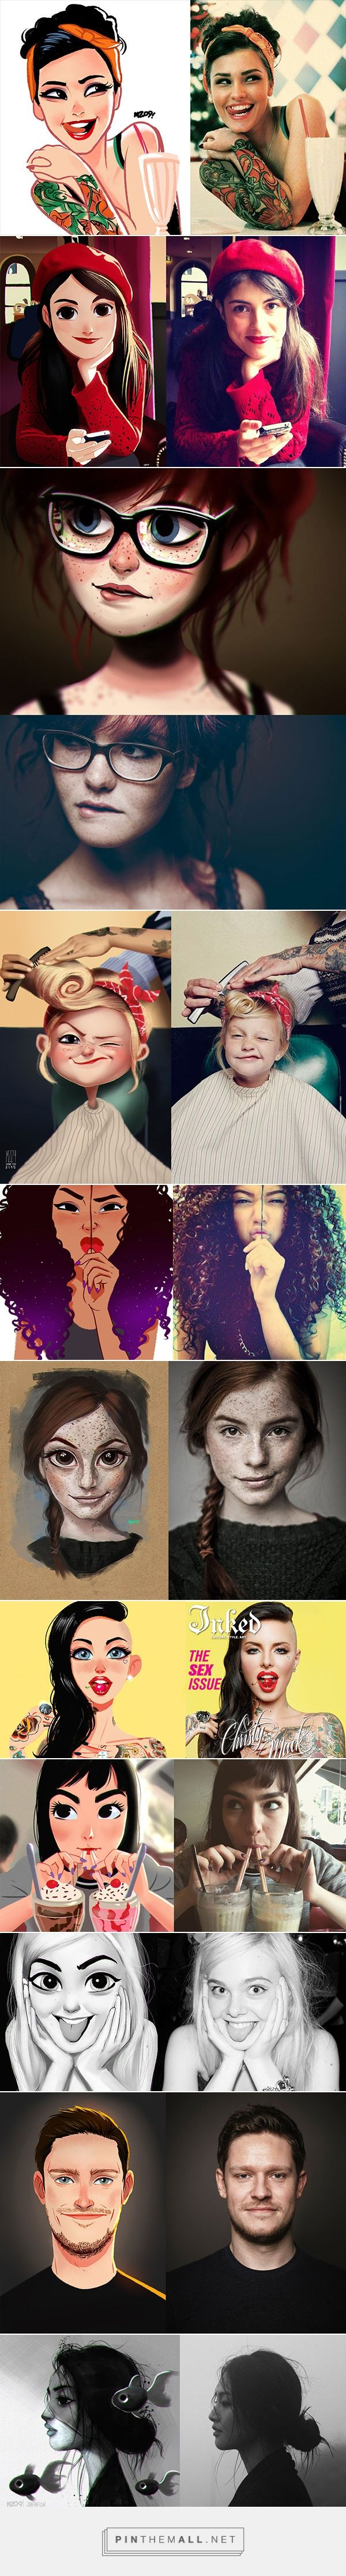 Stunning Digital Art Paintings of Random People – A Fun Series by Julio Cesar - created via http://pinthemall.net